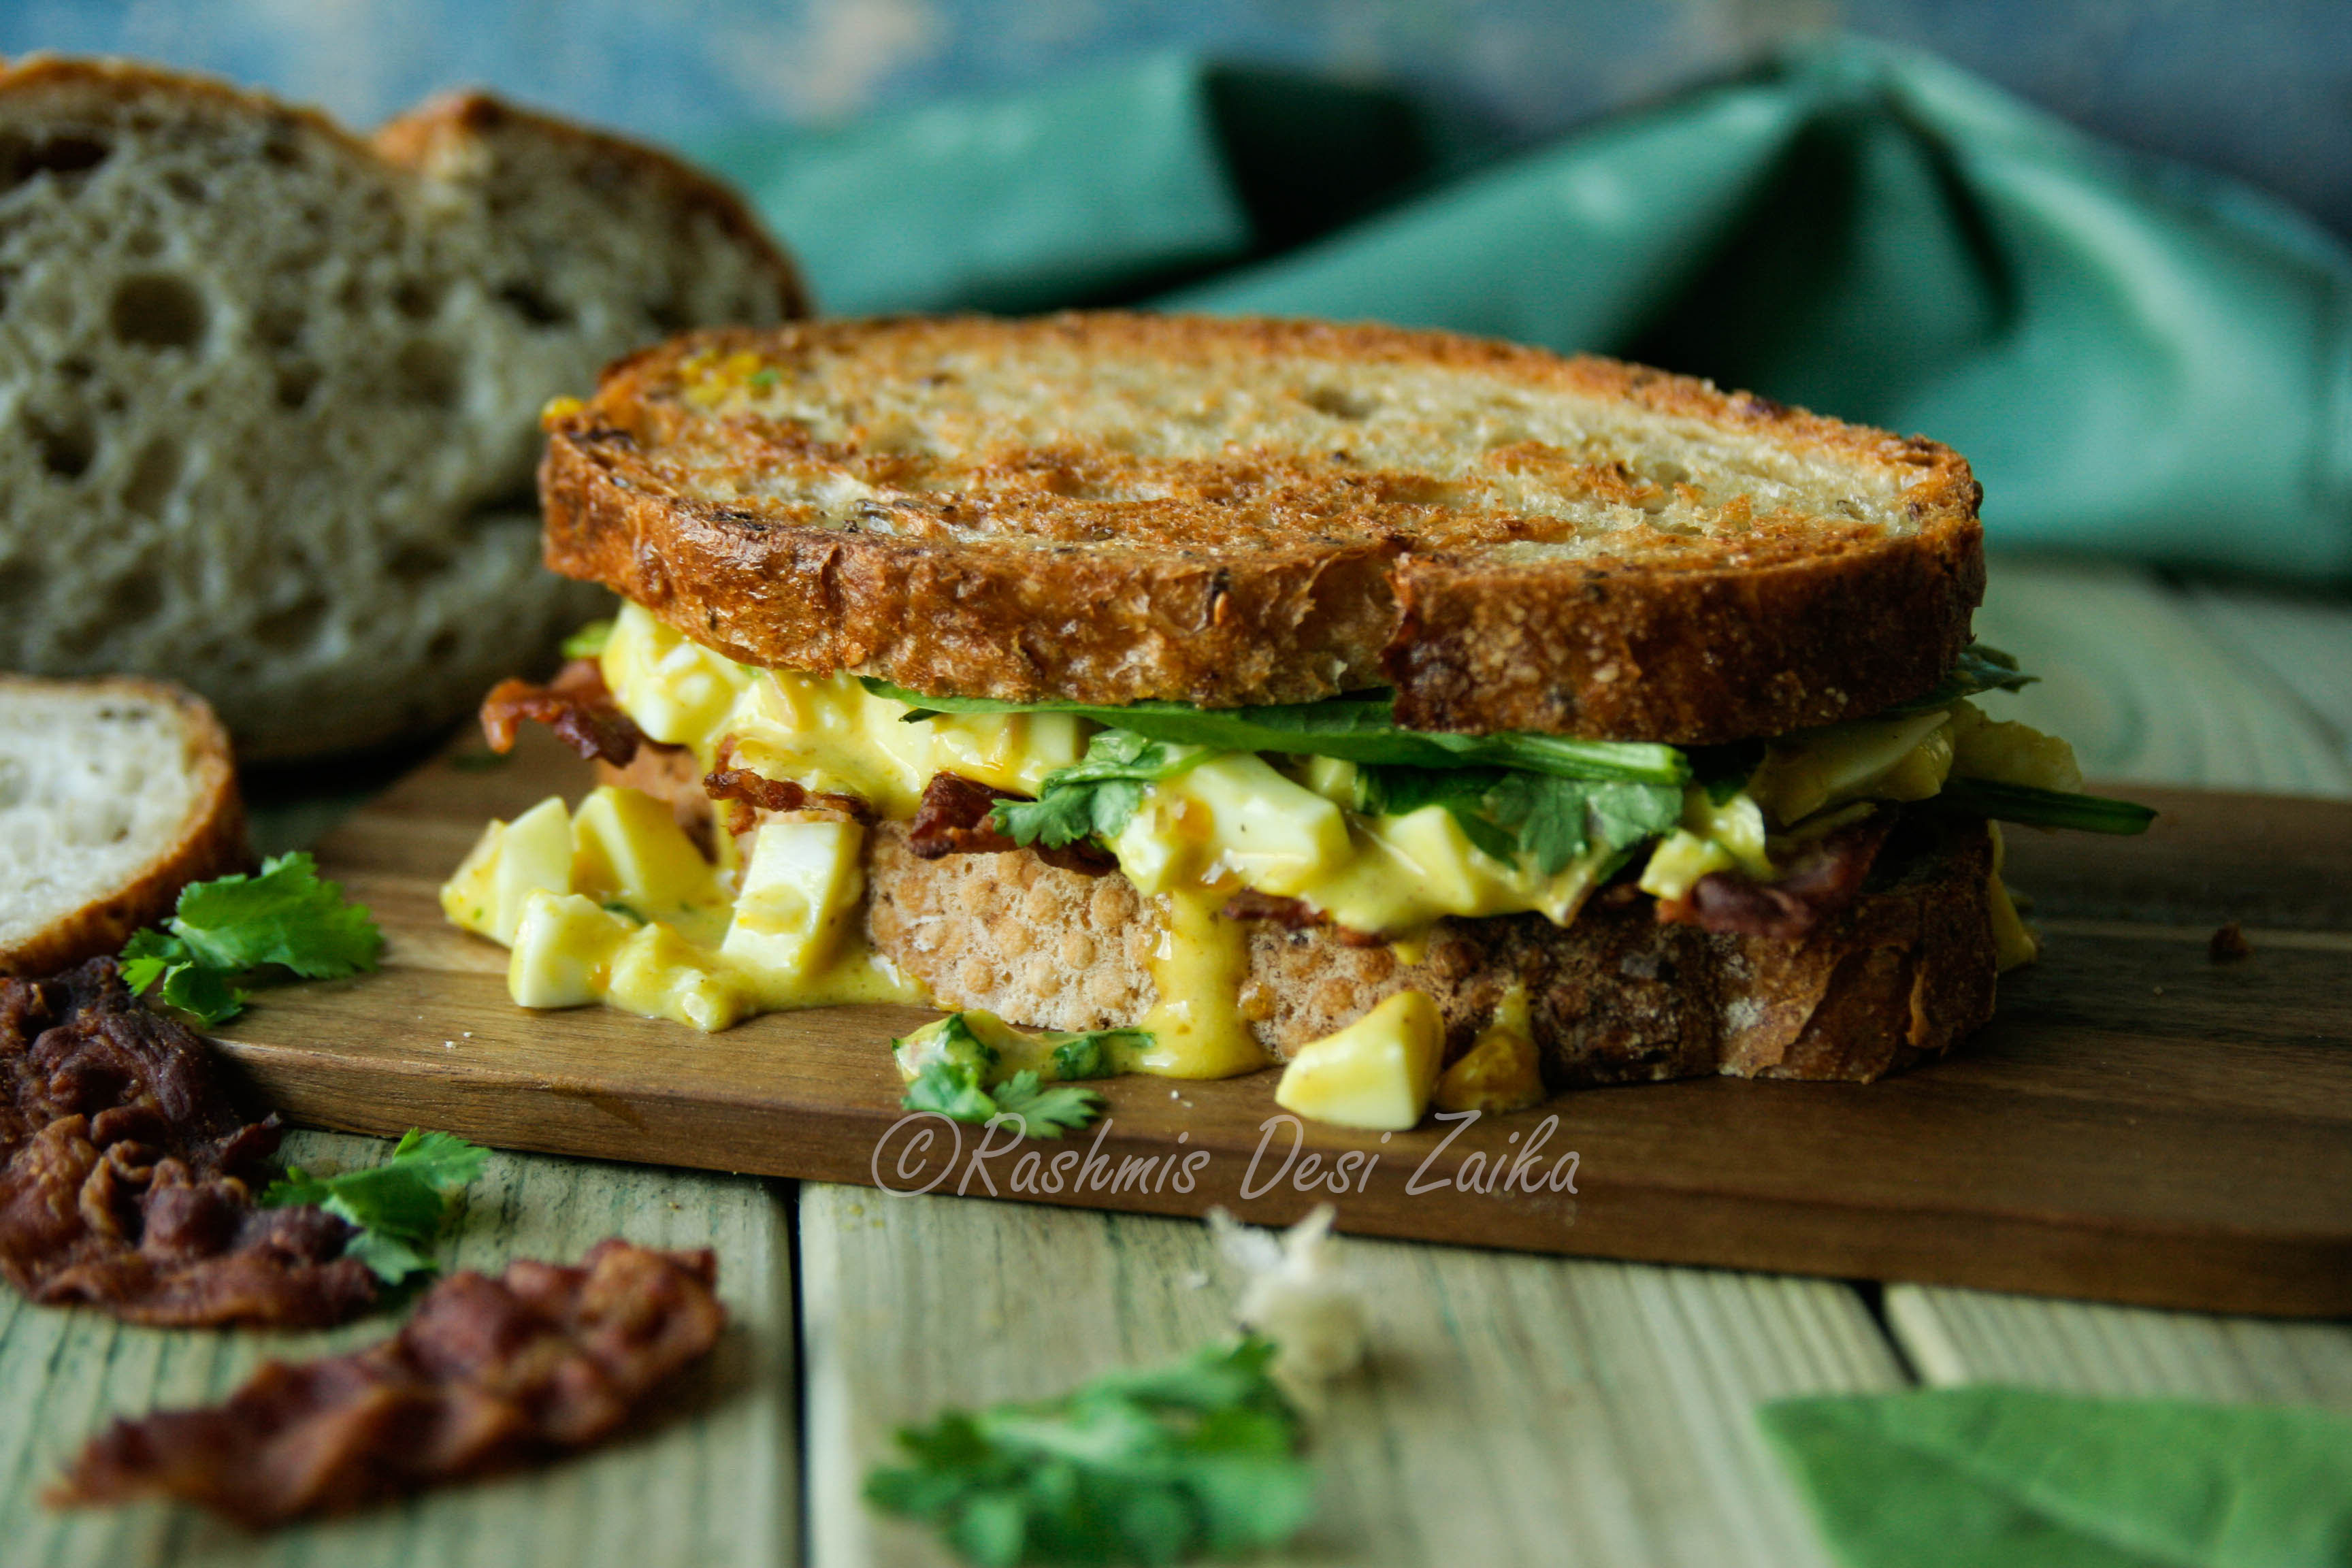 Spiced Egg Salad and Crispy Bacon Sandwich